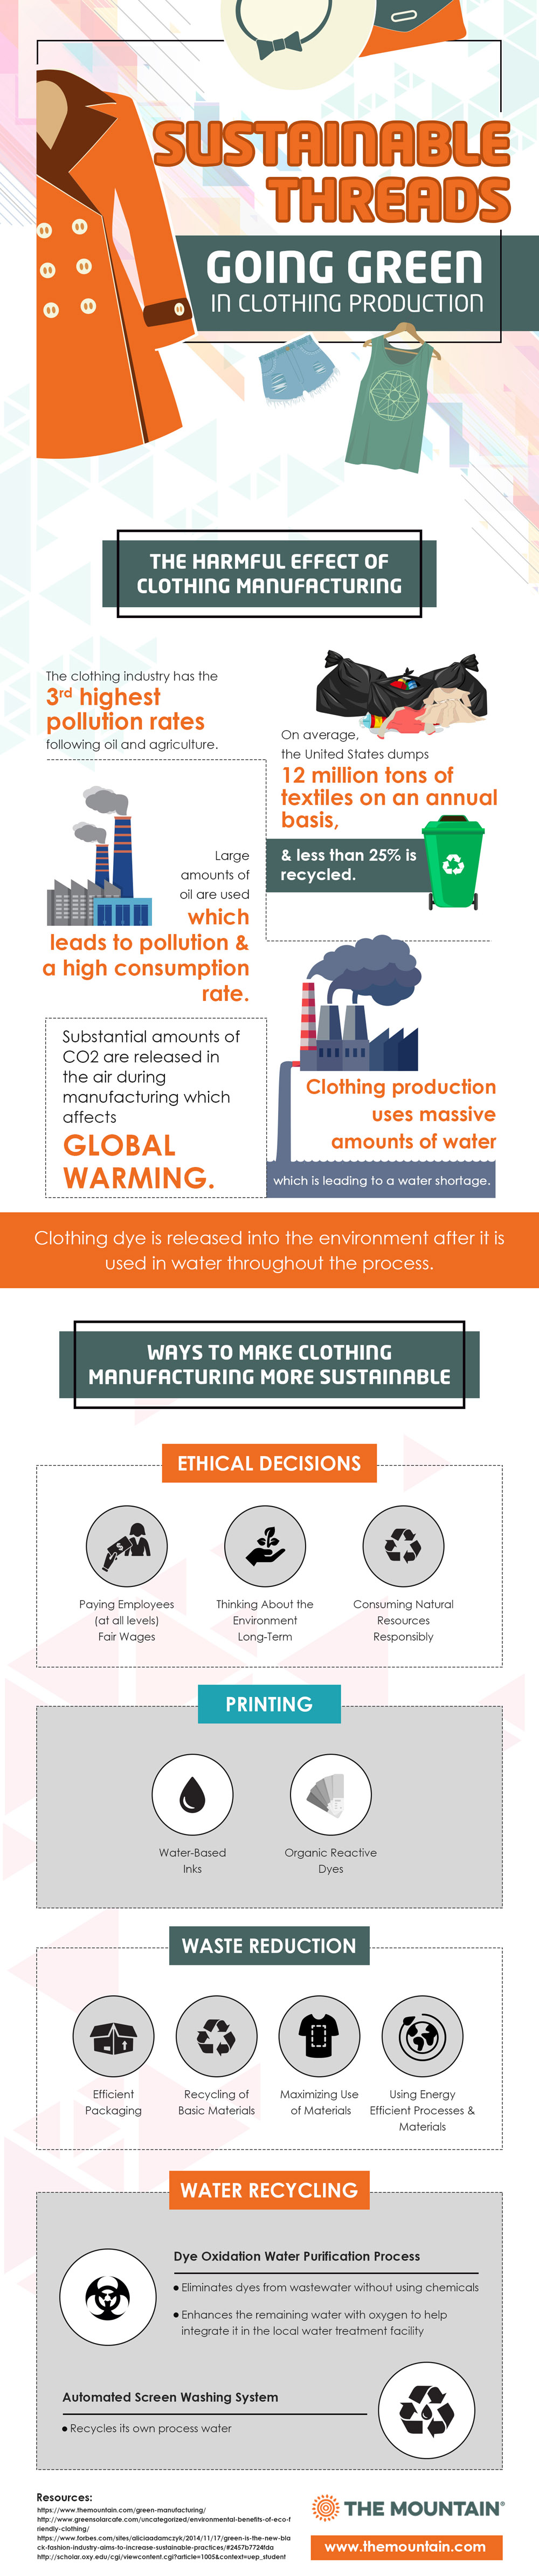 Sustainable Threads: Going Green in Clothing Production